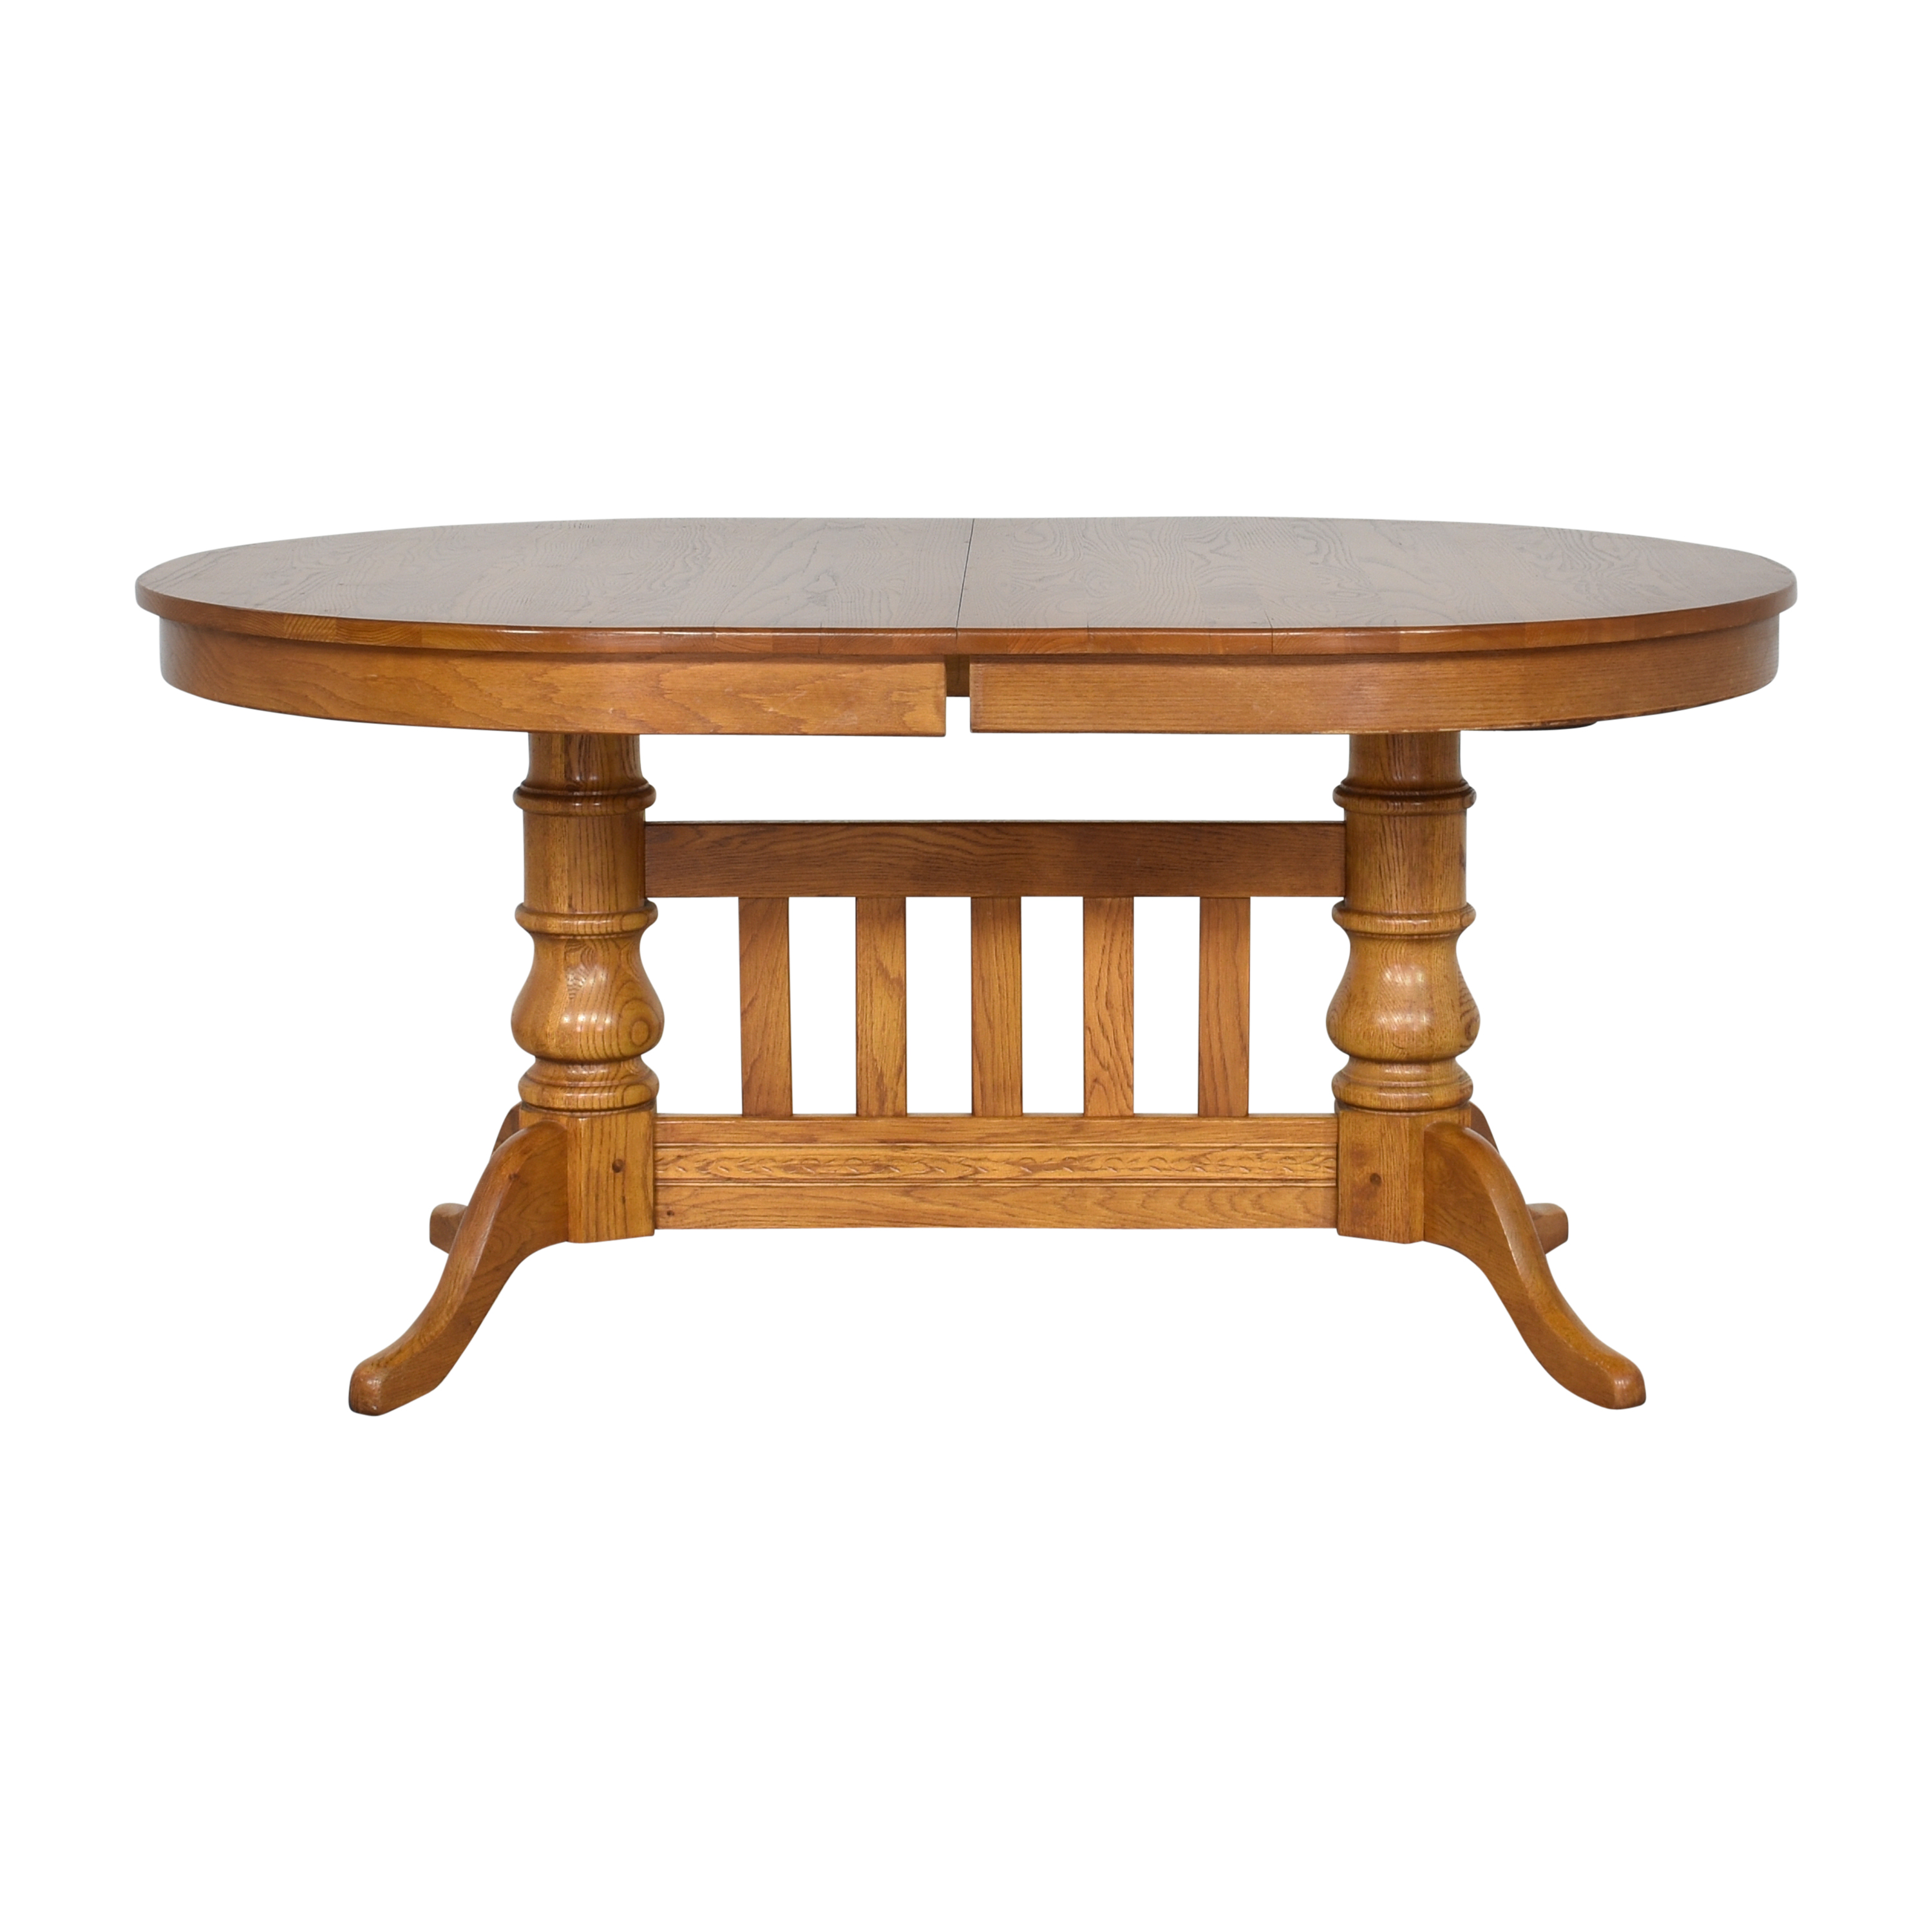 Oval Extendable Dining Table used